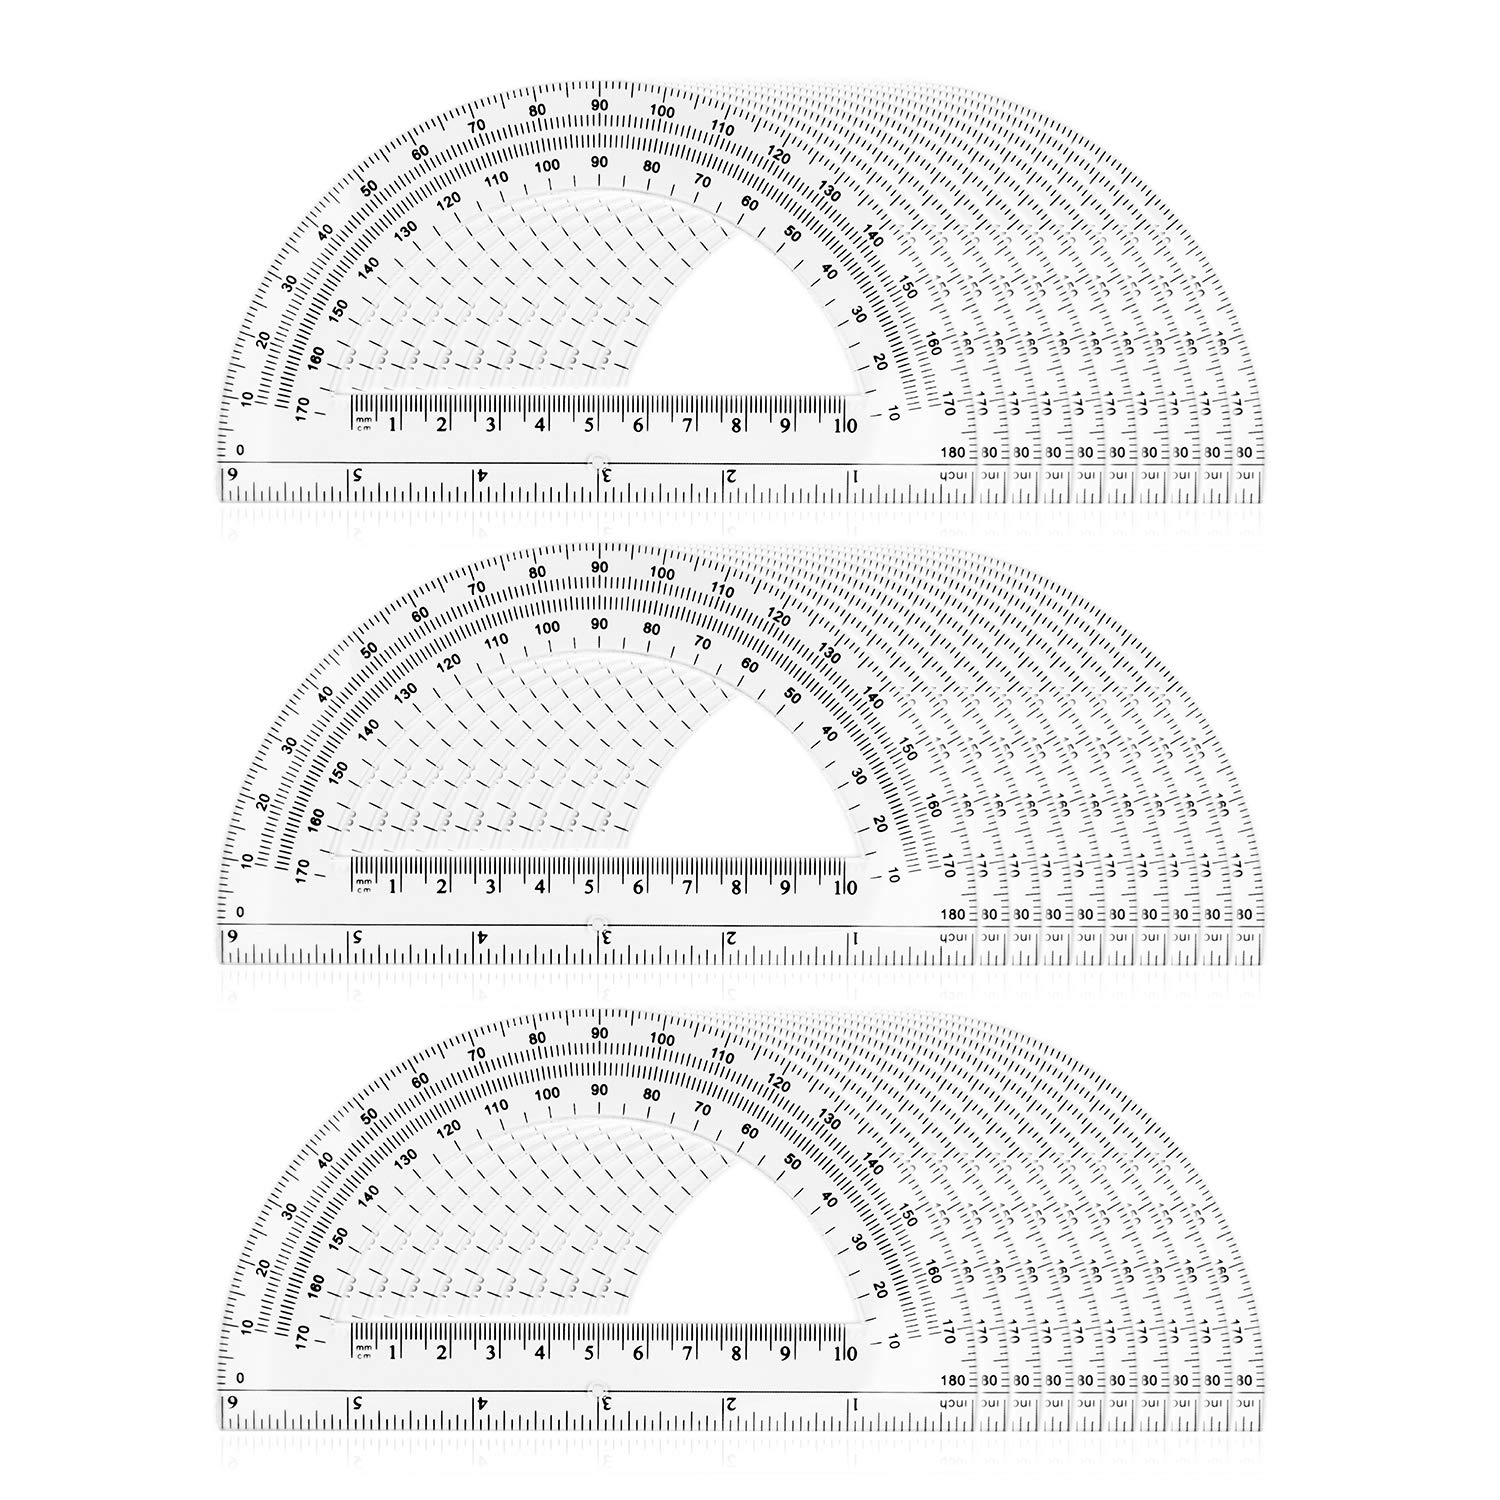 Protractors, Acrux7 6 inch Plastic Protractor, 30 Pack Math Protractor Semicircle Plastic Protractors 180 Degrees for Angle Measurement, Clear by Acrux7